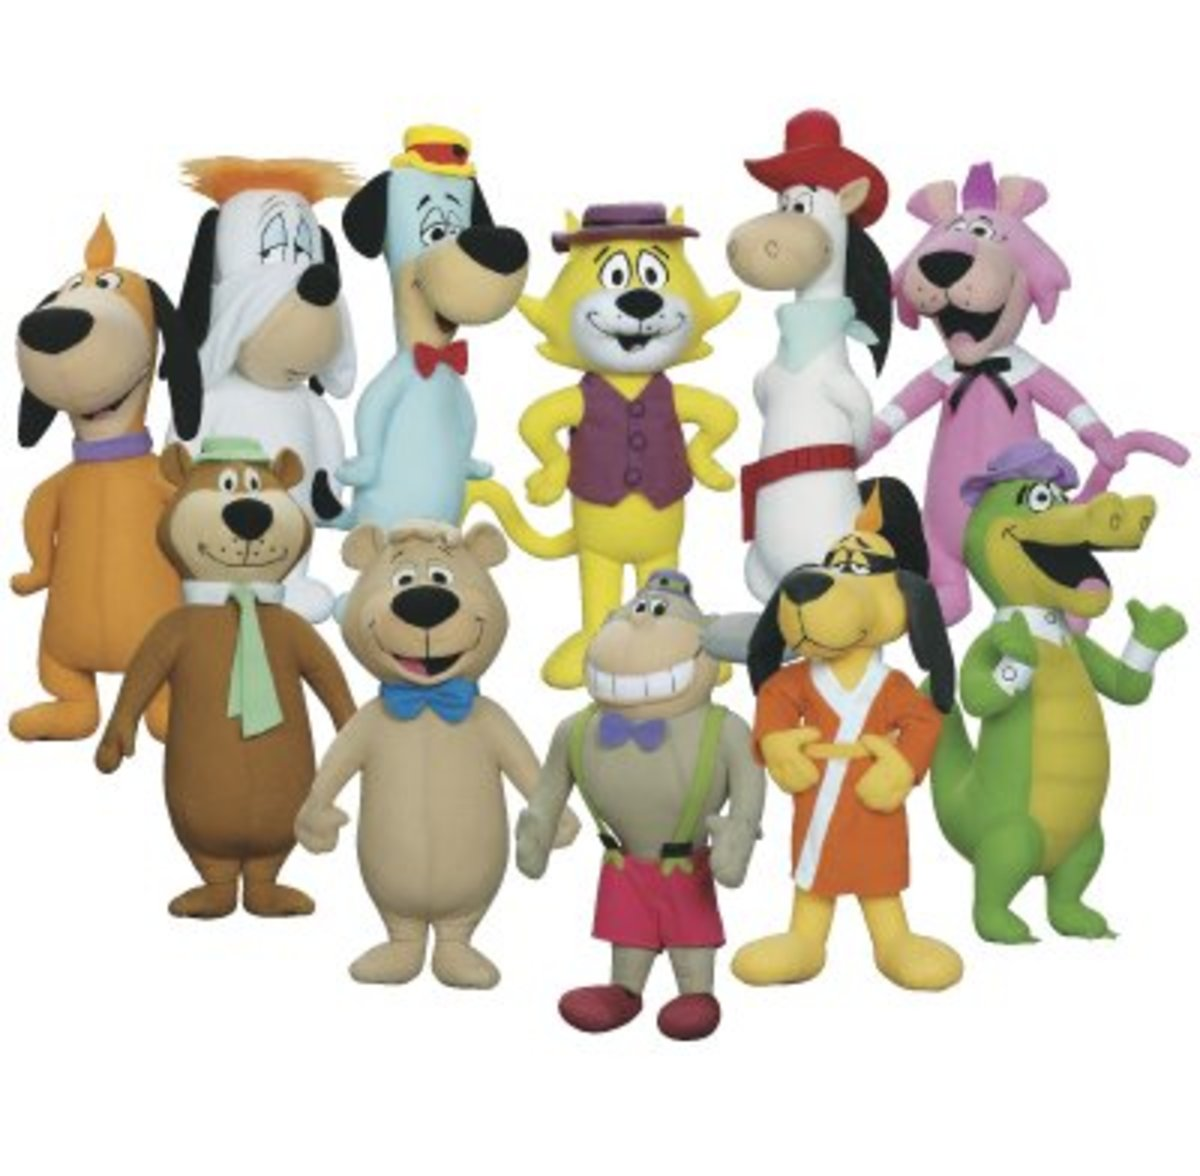 Favorite Cartoon Characters 60 S : Top ten tv cartoon characters from the s and